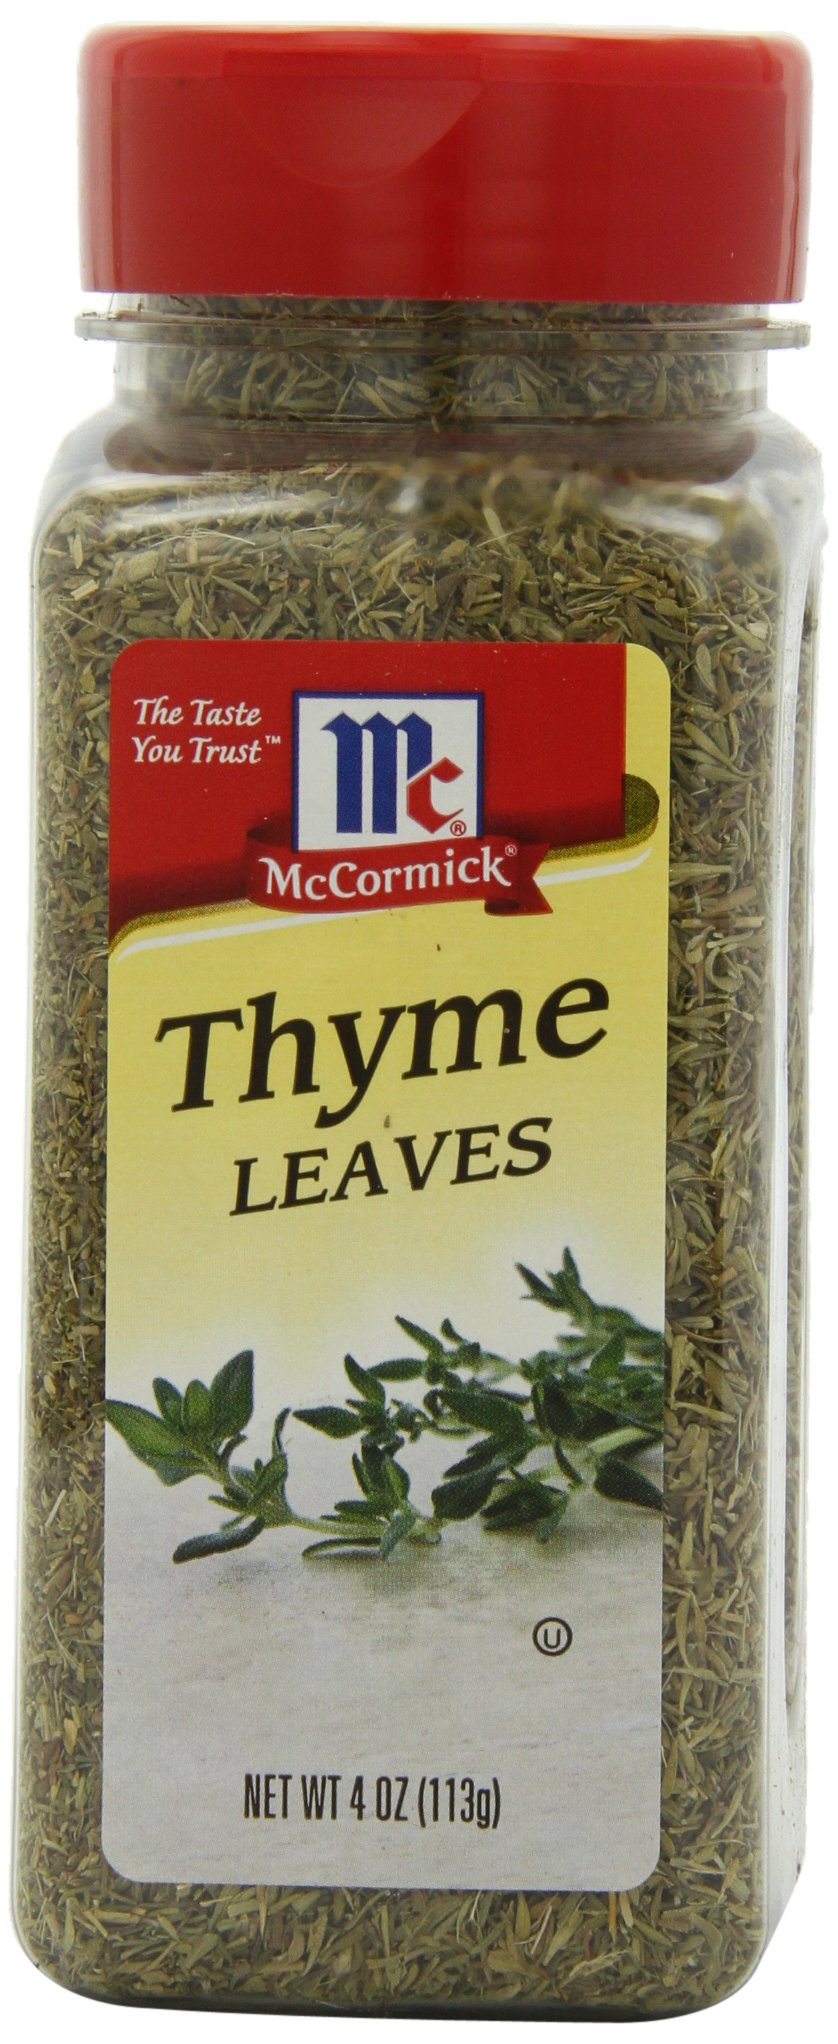 McCormick Thyme Leaves, 4 oz (Case of 12) by McCormick